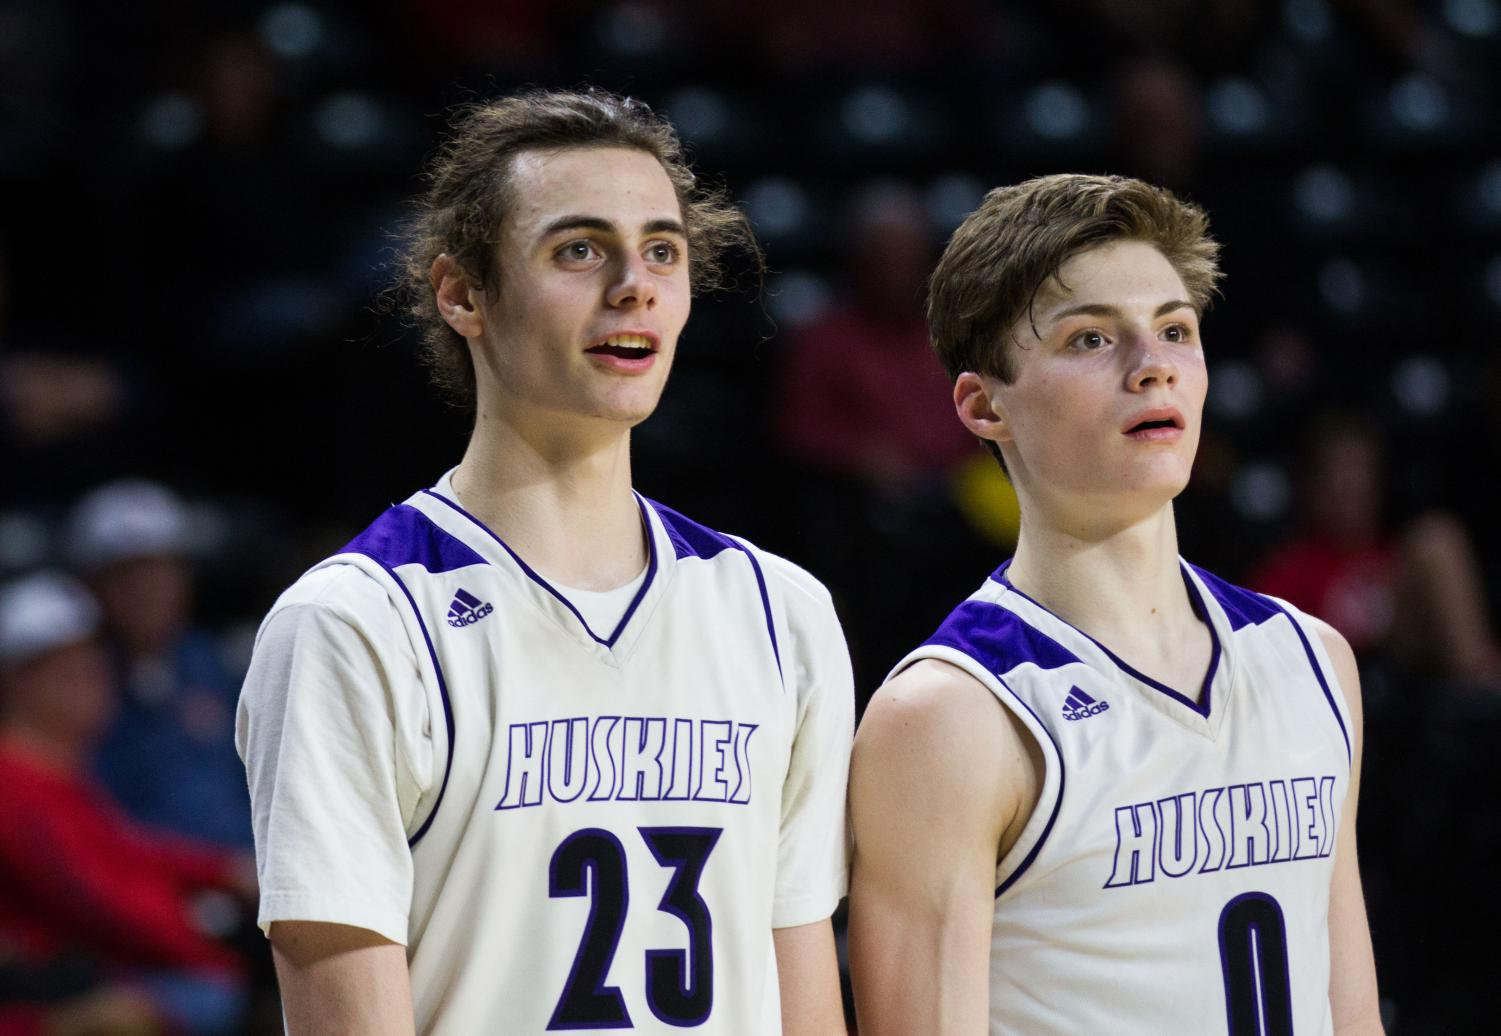 Senior forward Parker Braun (23) and junior guard Christian Braun (0) watch the action from the bench after checking out in the fourth quarter of the Huskies matchup against Lawrence High at Charles Koch Arena March 8. The Huskies defeated the Lions, 65-37.